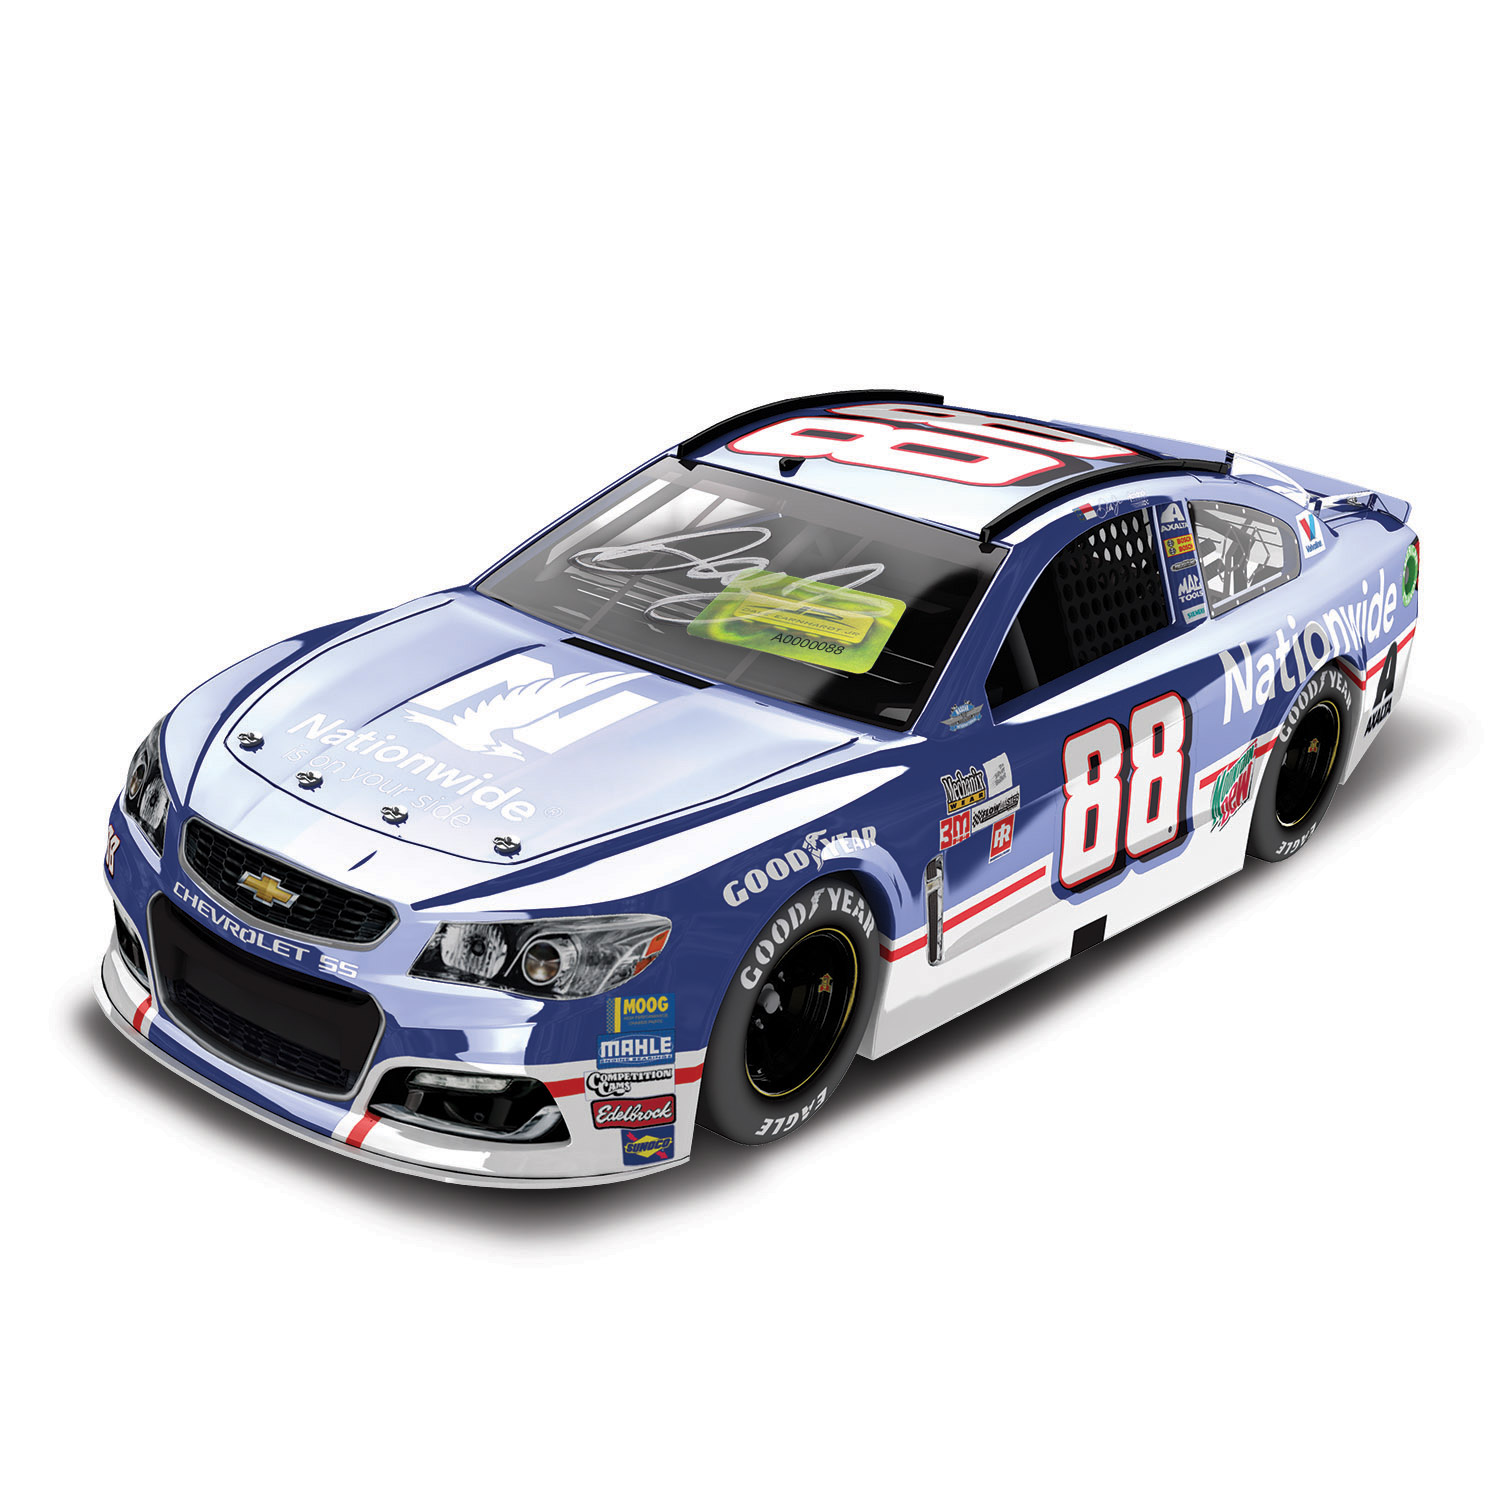 Dale Earnhardt Jr. Action Racing 2017 #88 Nationwide Darlington 1:24 Monster Energy Nascar... by Lionel LLC